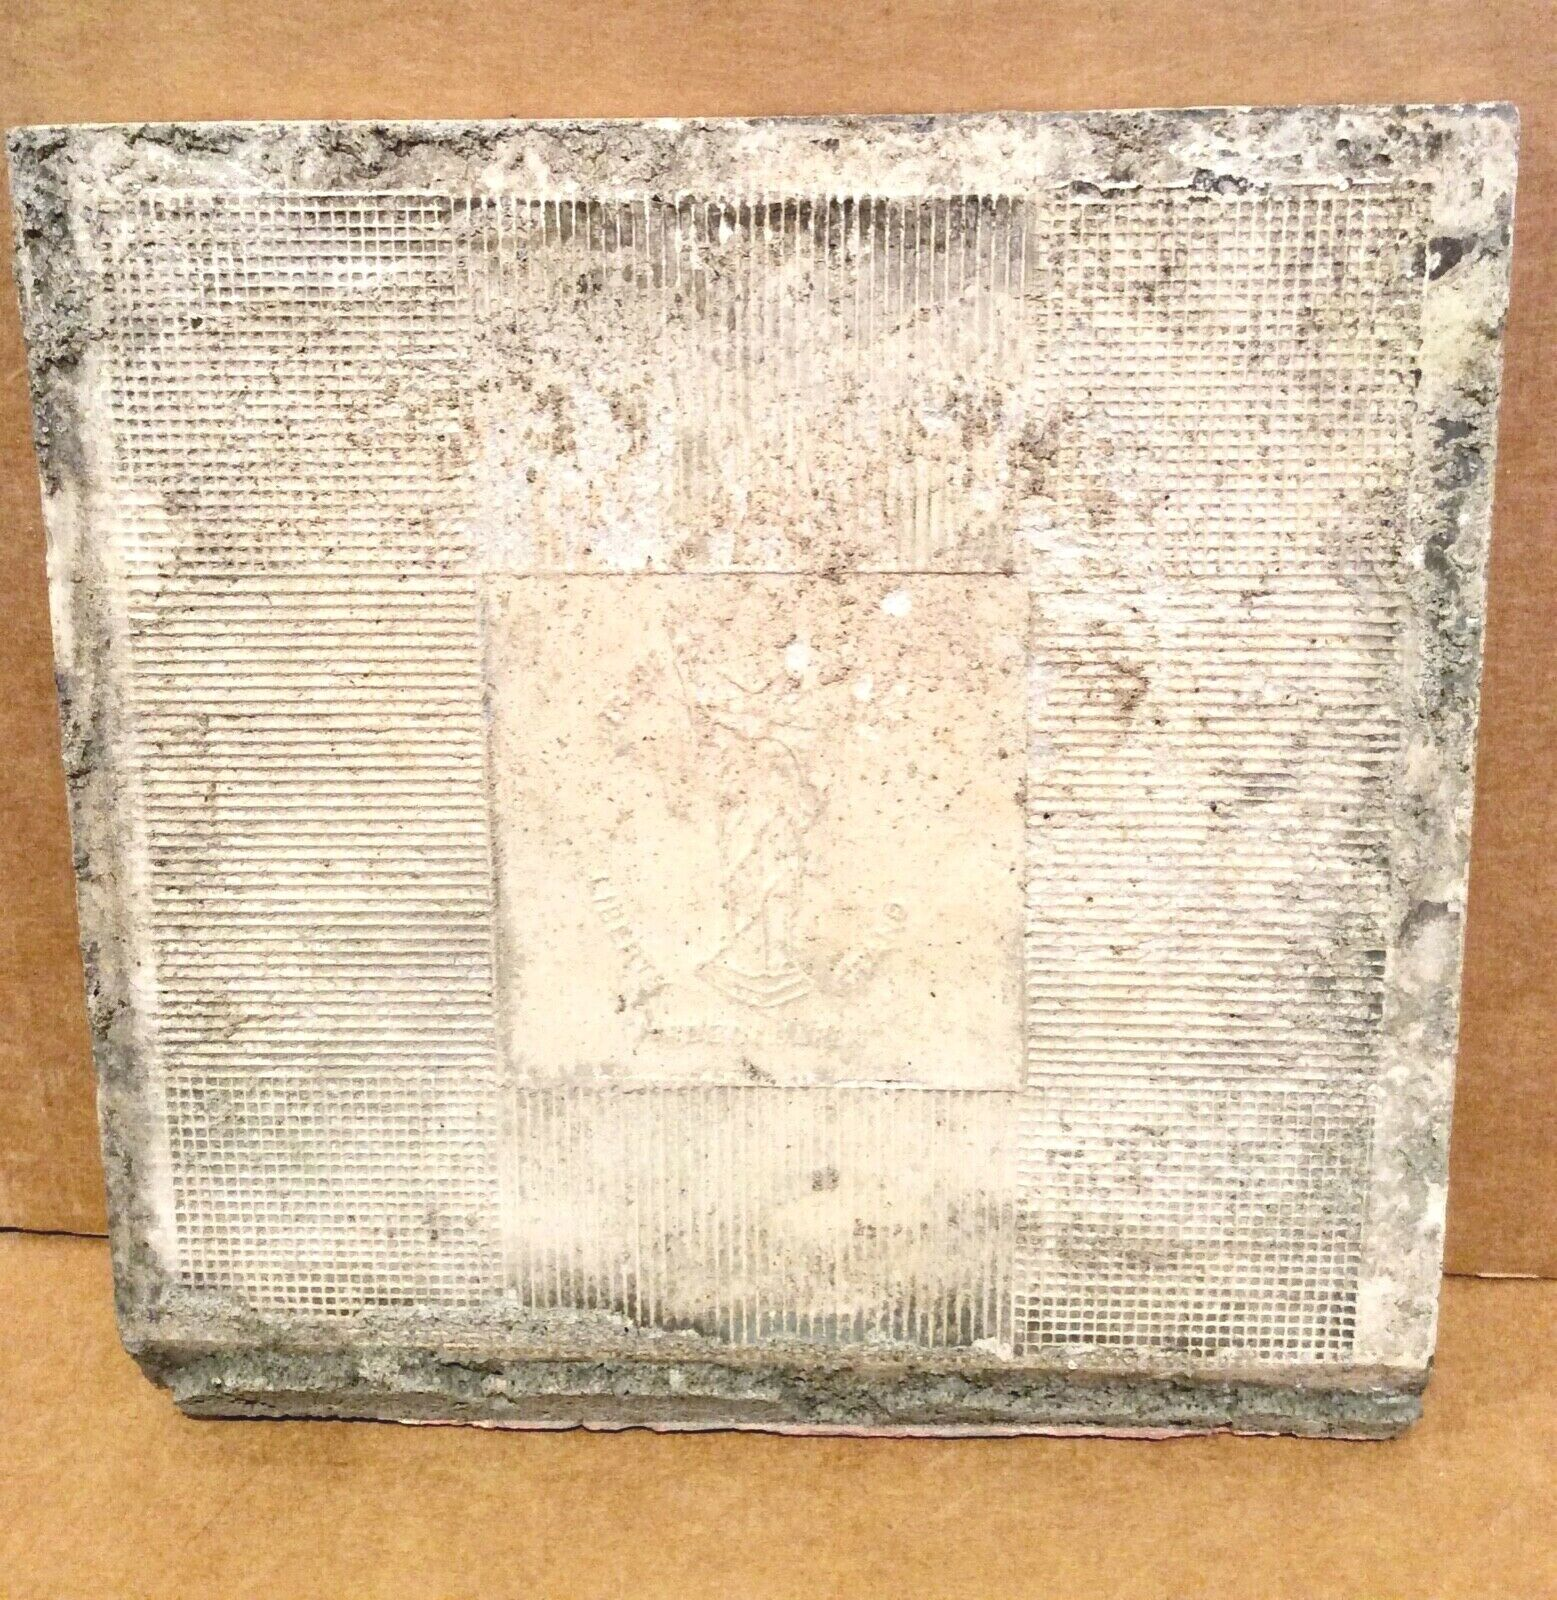 4 Tile Panel, Japan, Geometric Deco, Liberty Brand, 1920 s, 12x12, Japanese - $249.99